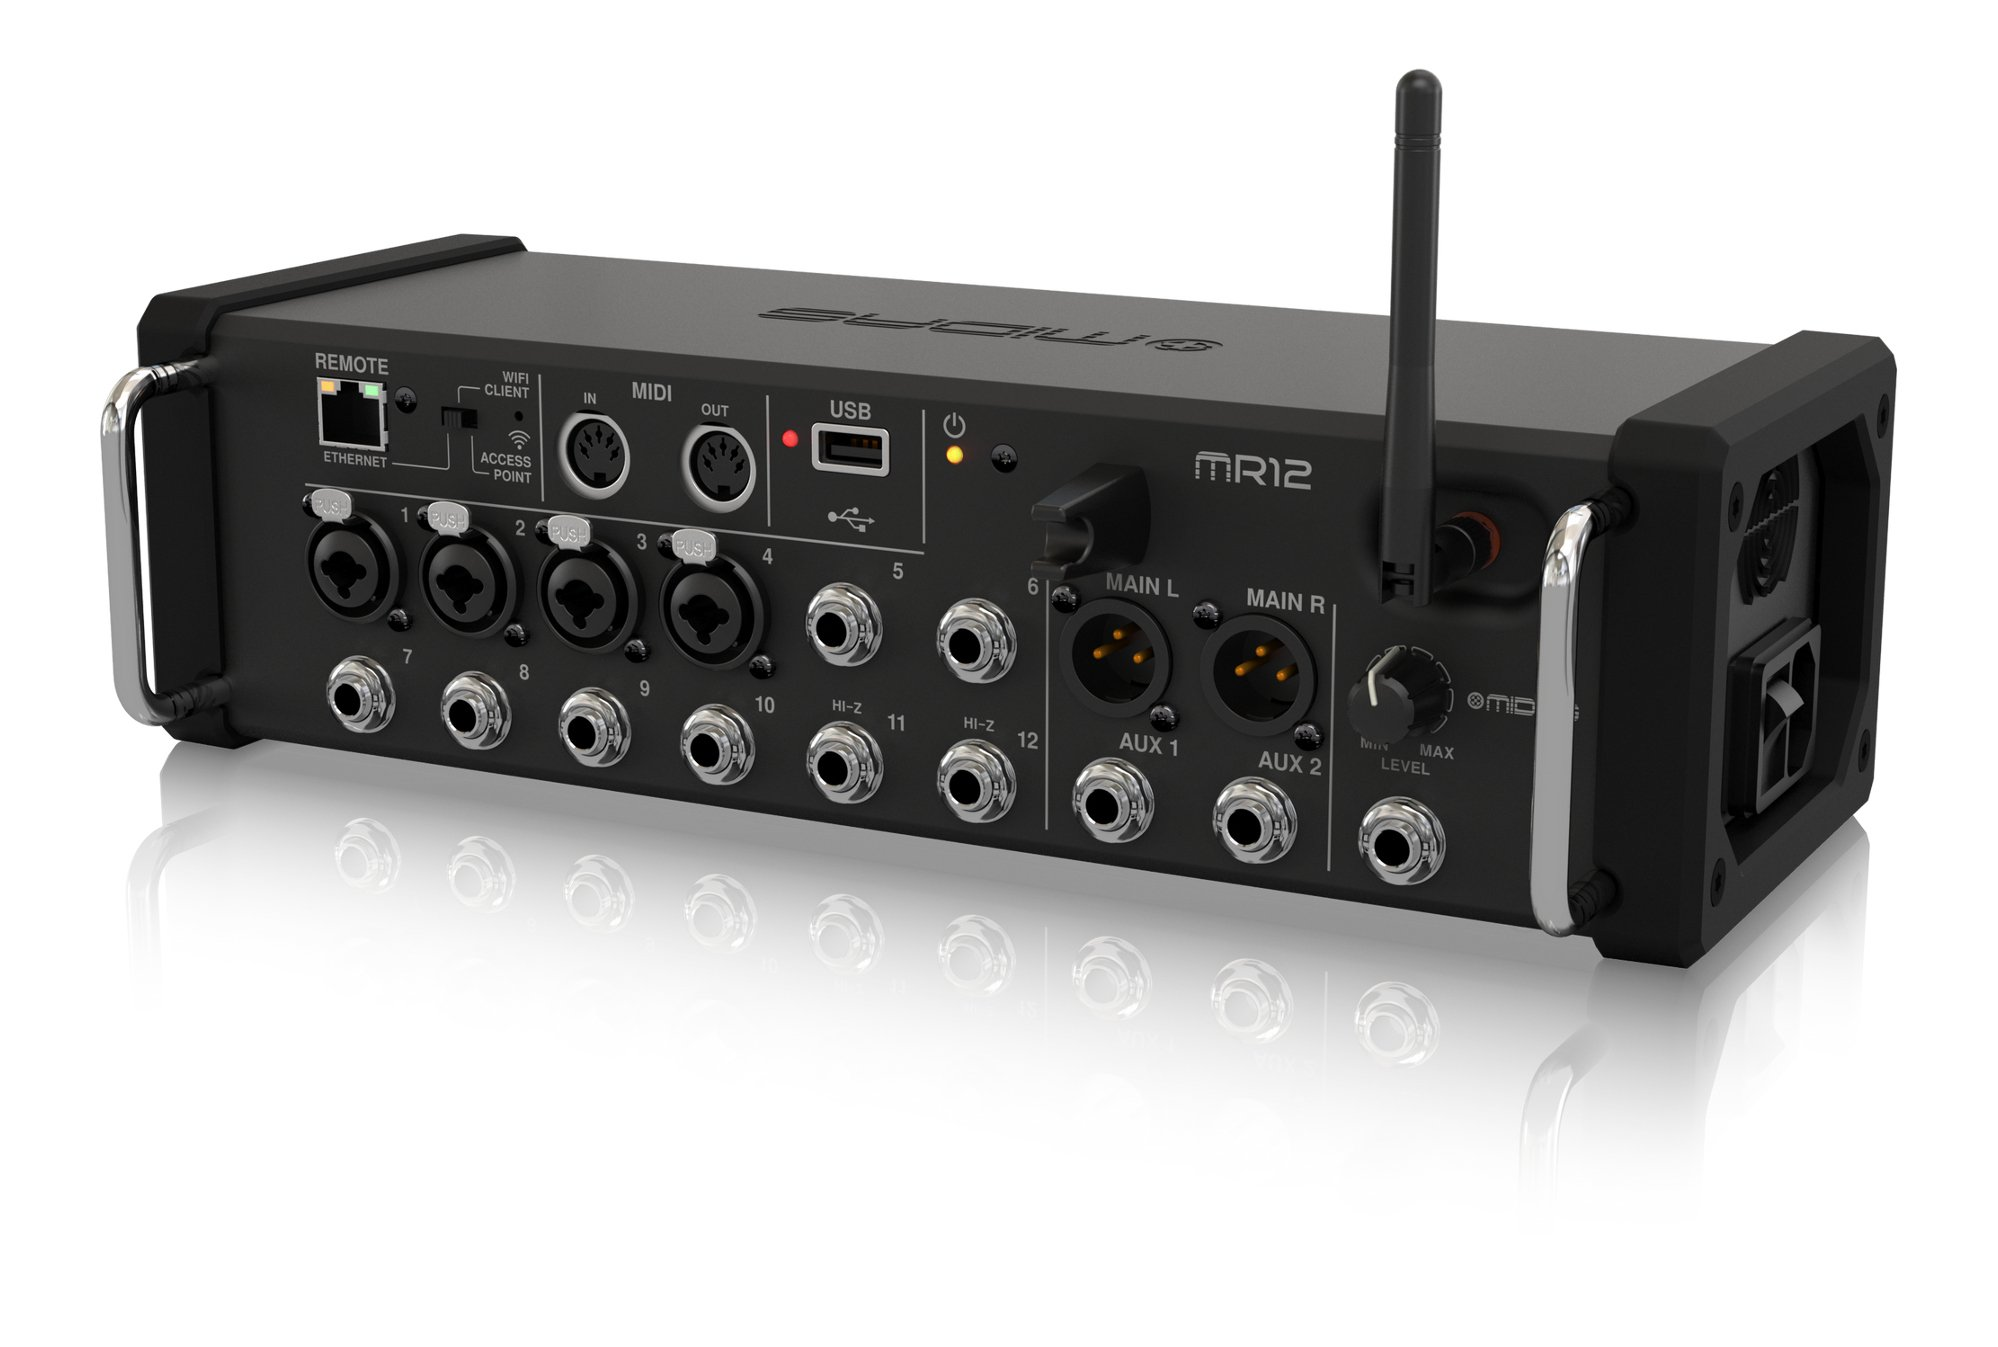 12-Input App-Controlled Digital Mixer with Integrated Effects, WiFi Module, and USB